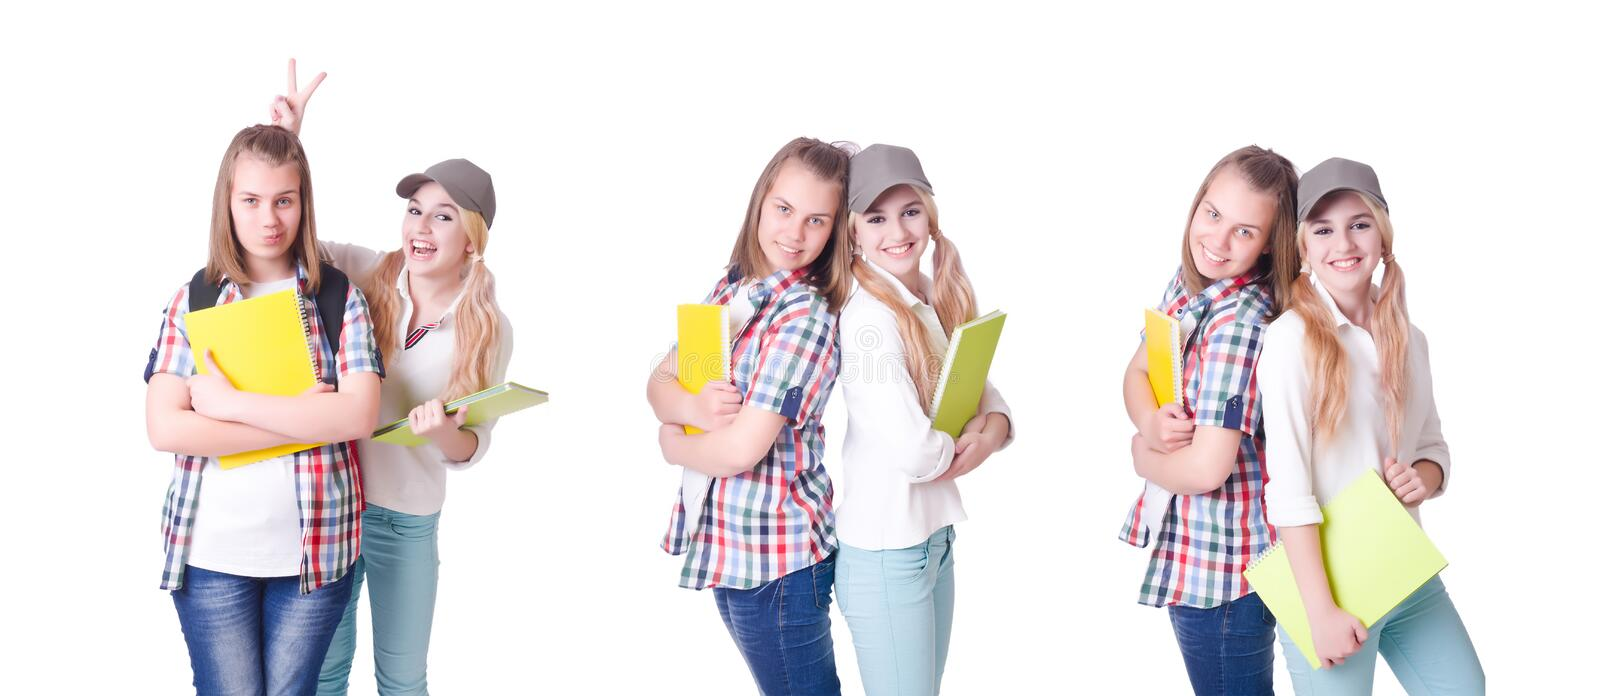 The pair of young students on white stock image